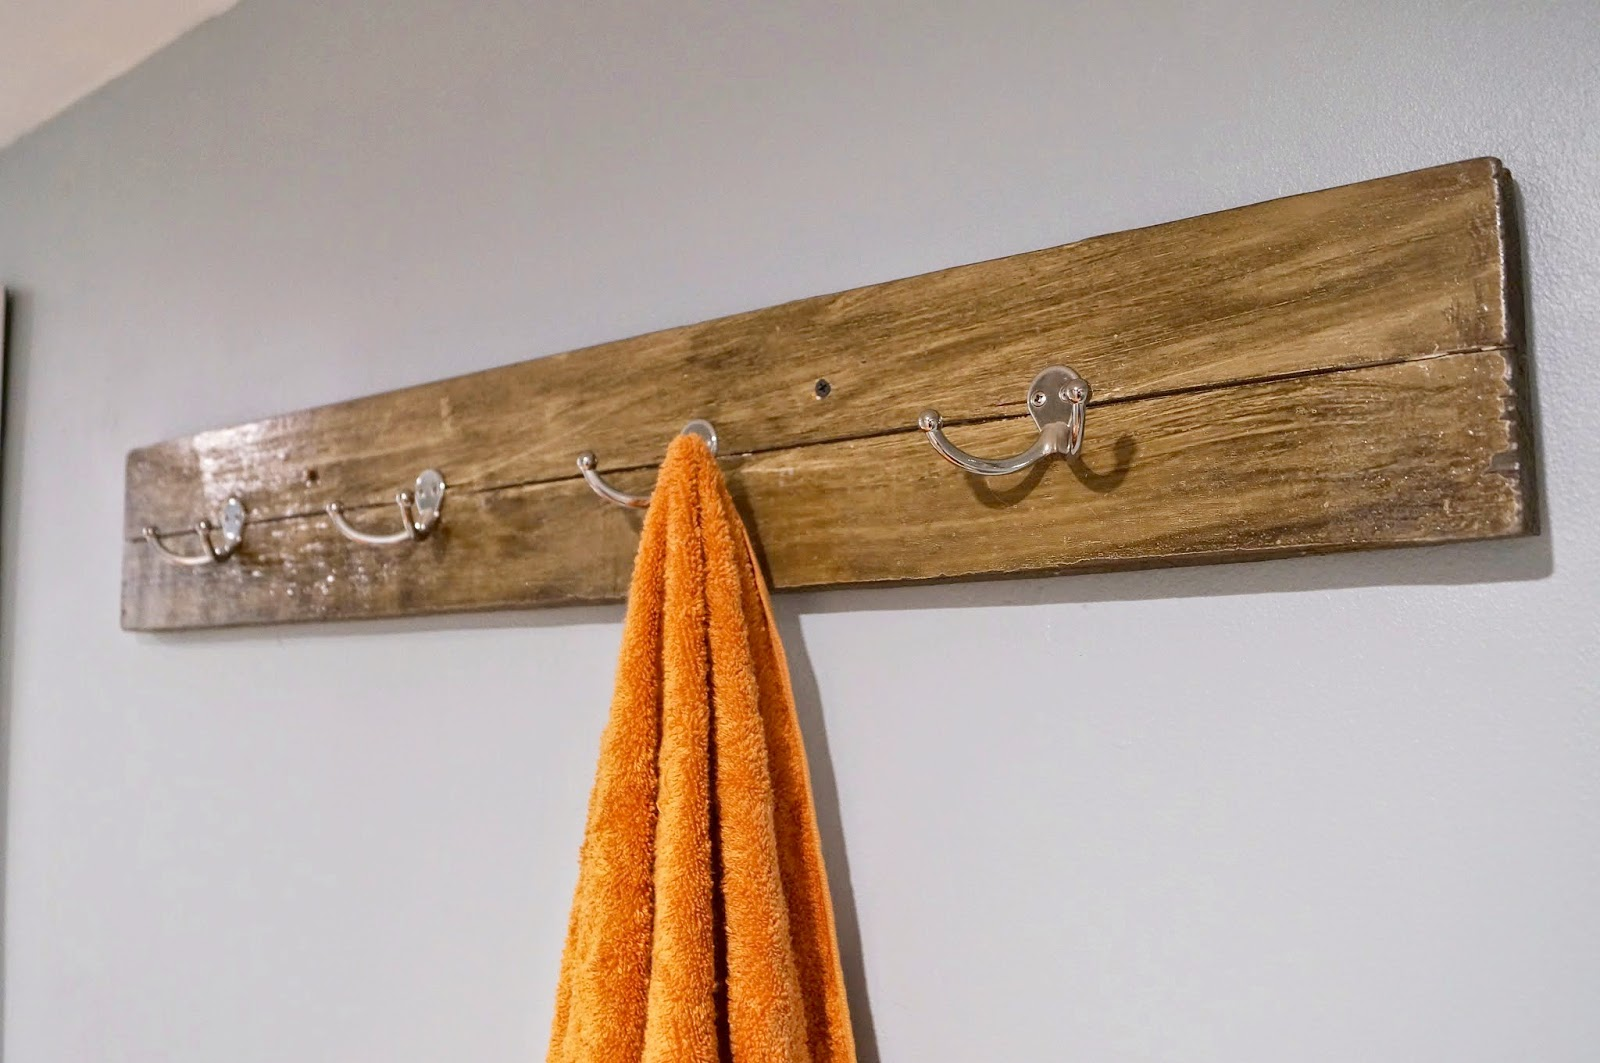 DIY Reclaimed Wood Towel Rack